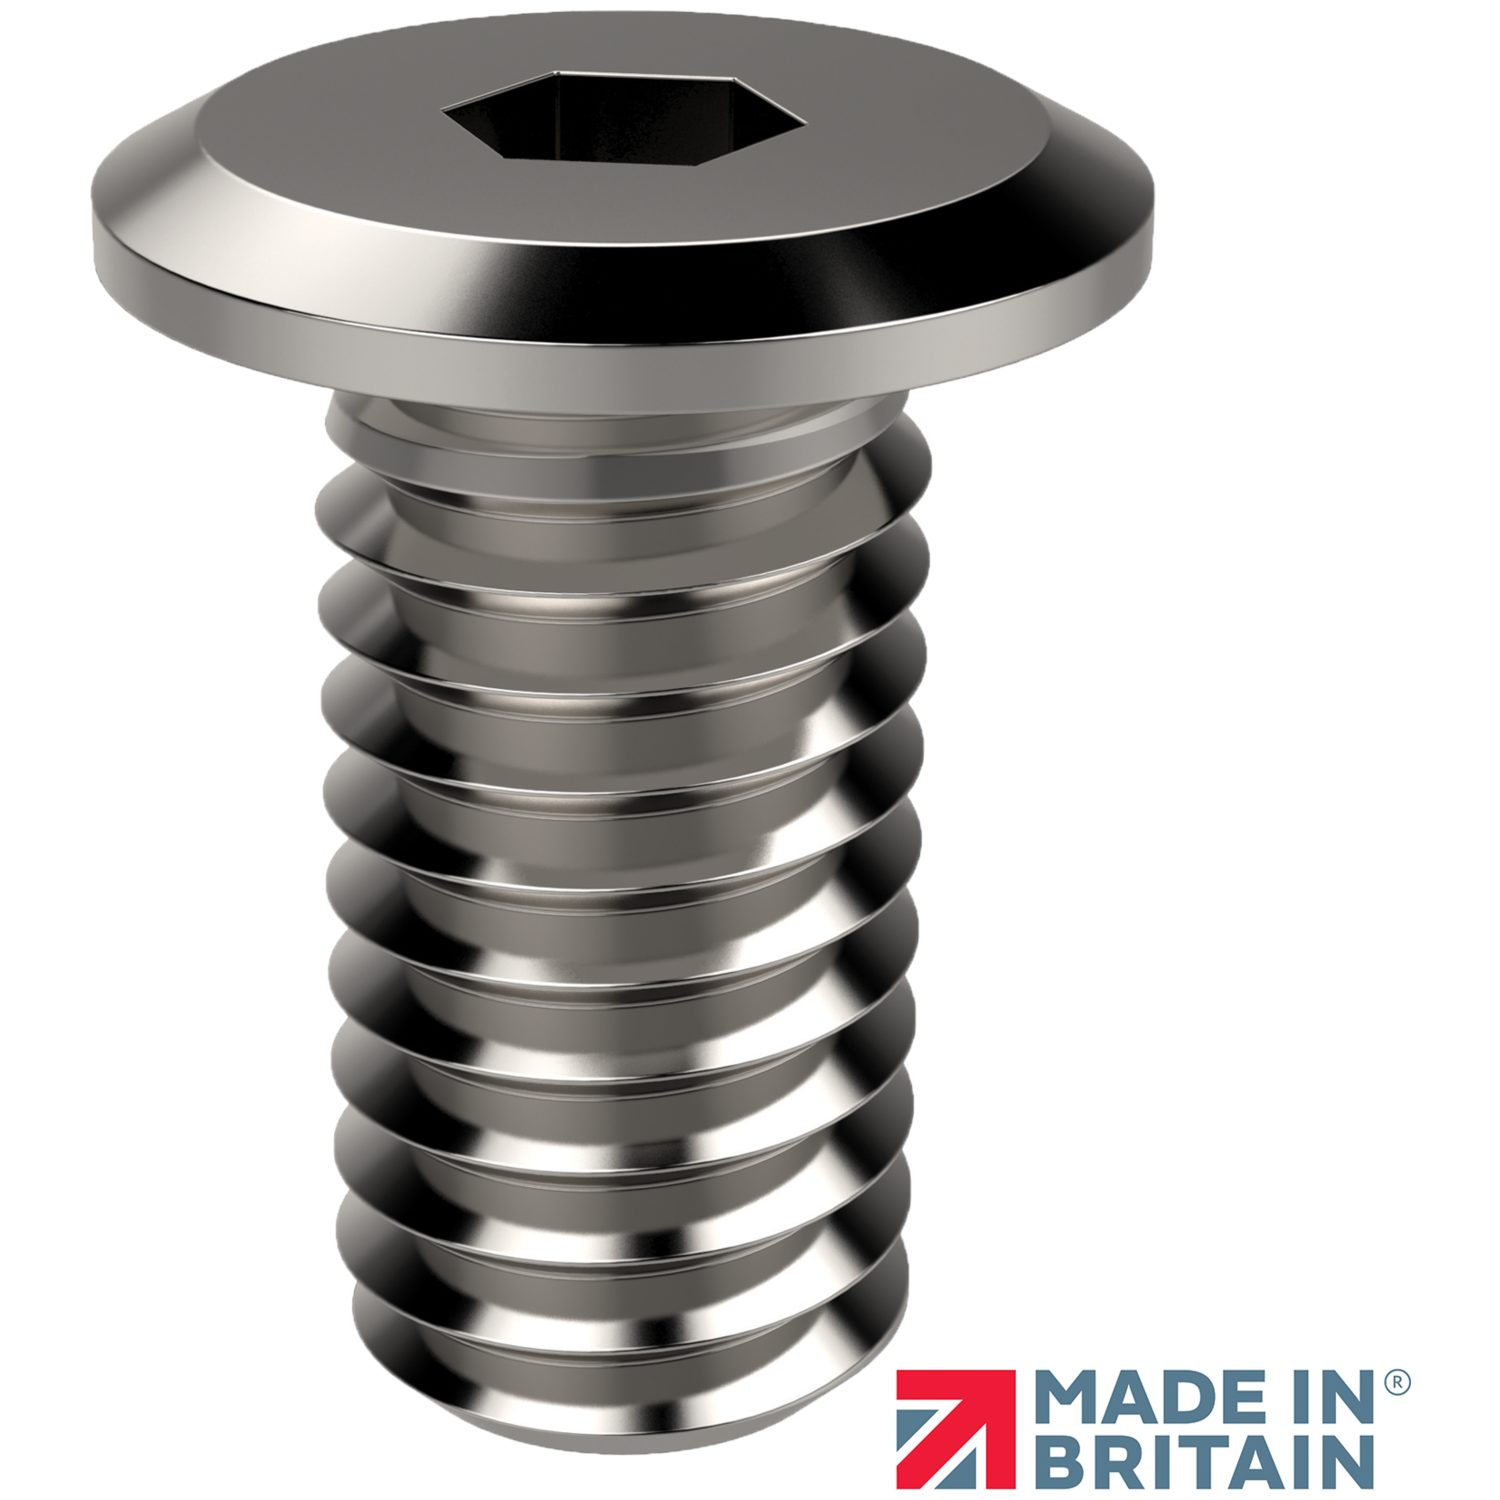 P0208.A2 - Ultra Low Head Cap Screws